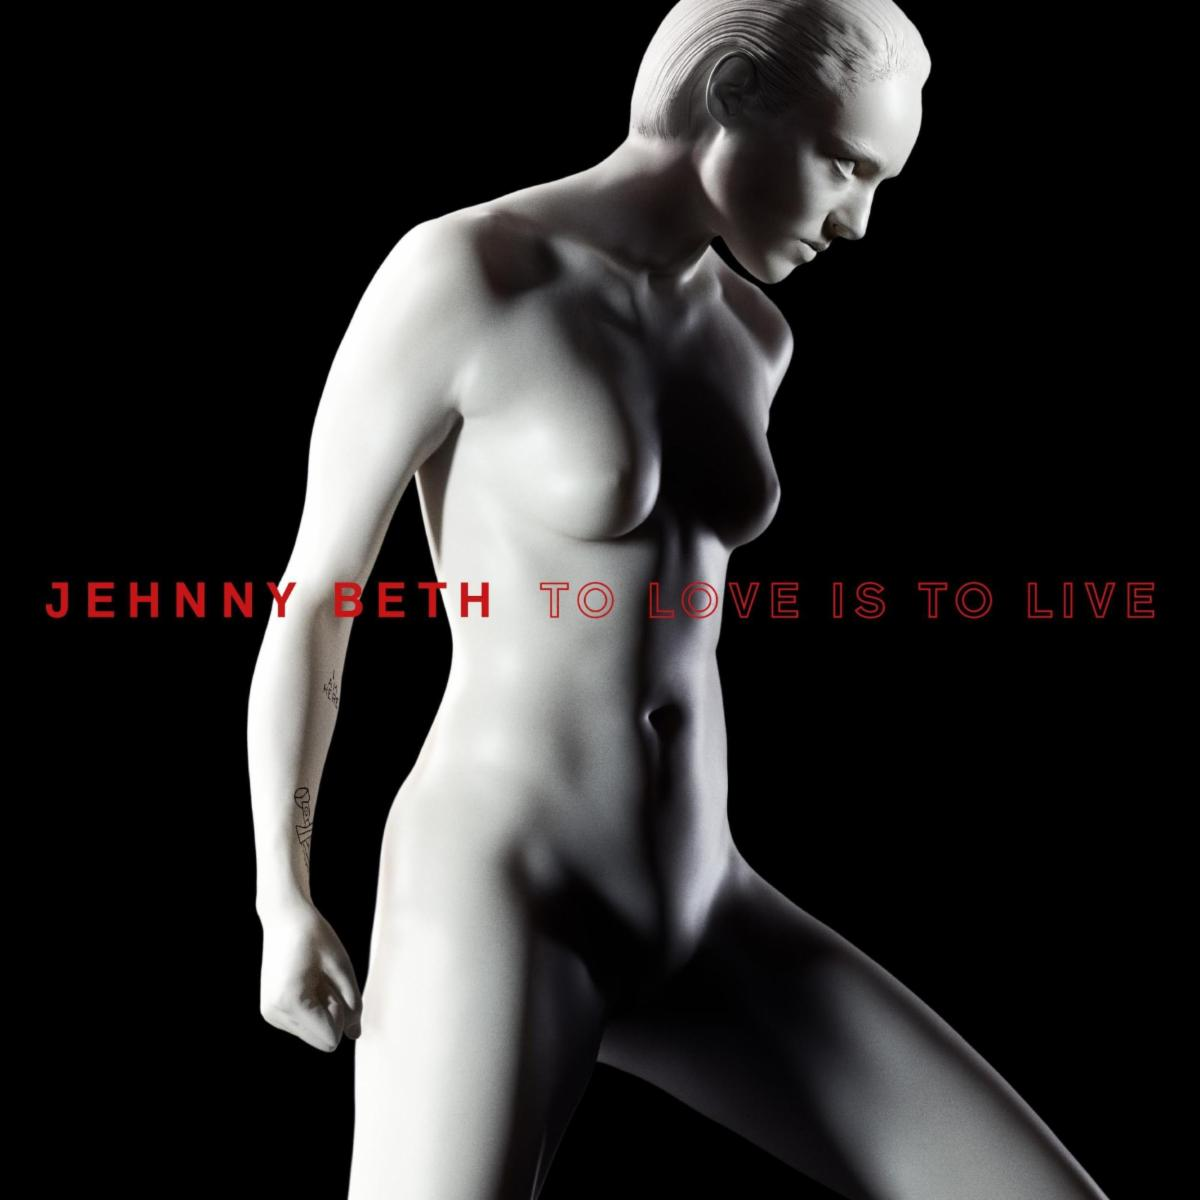 Jehnny Beth debut solo album